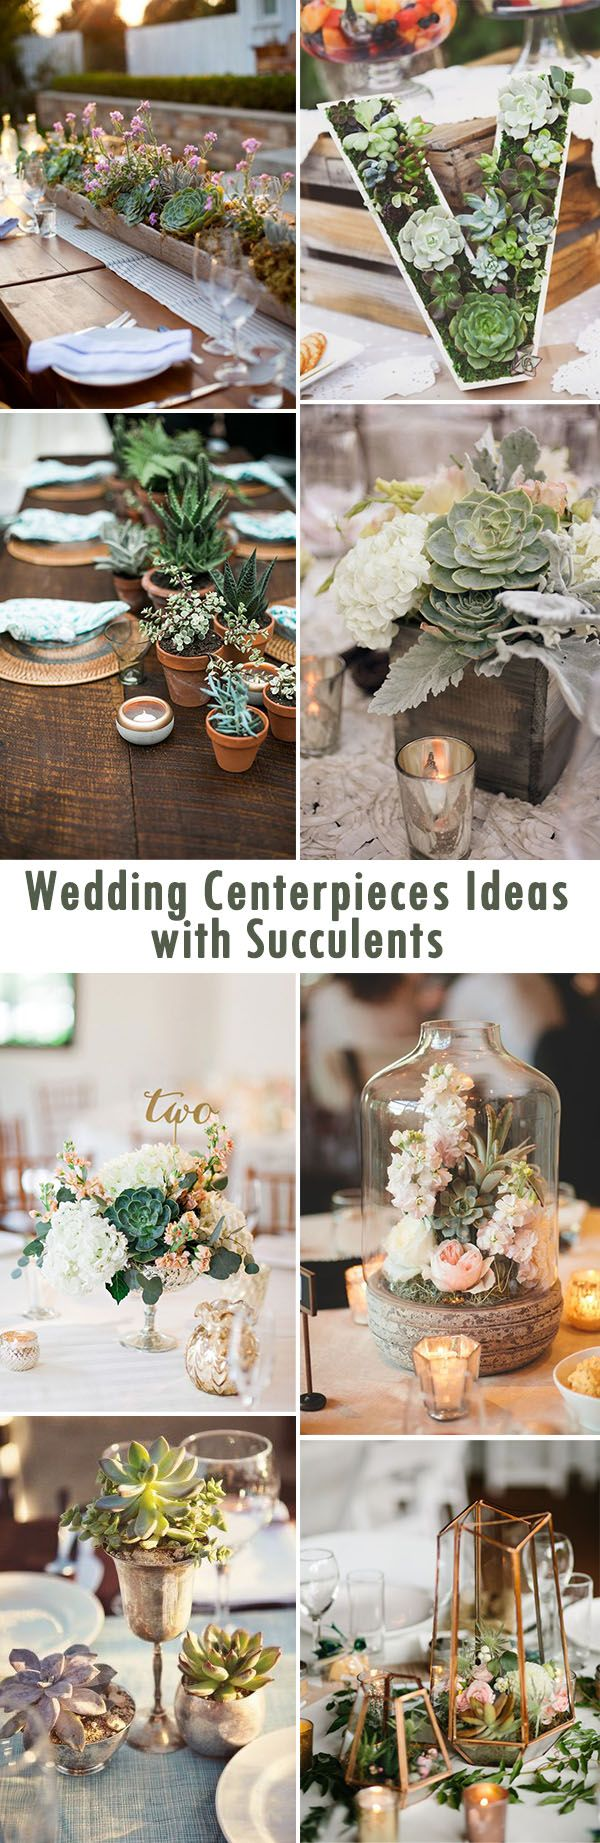 Diy wedding table decorations ideas   Best Ideas to Incorporate Succulents into Your Weddings